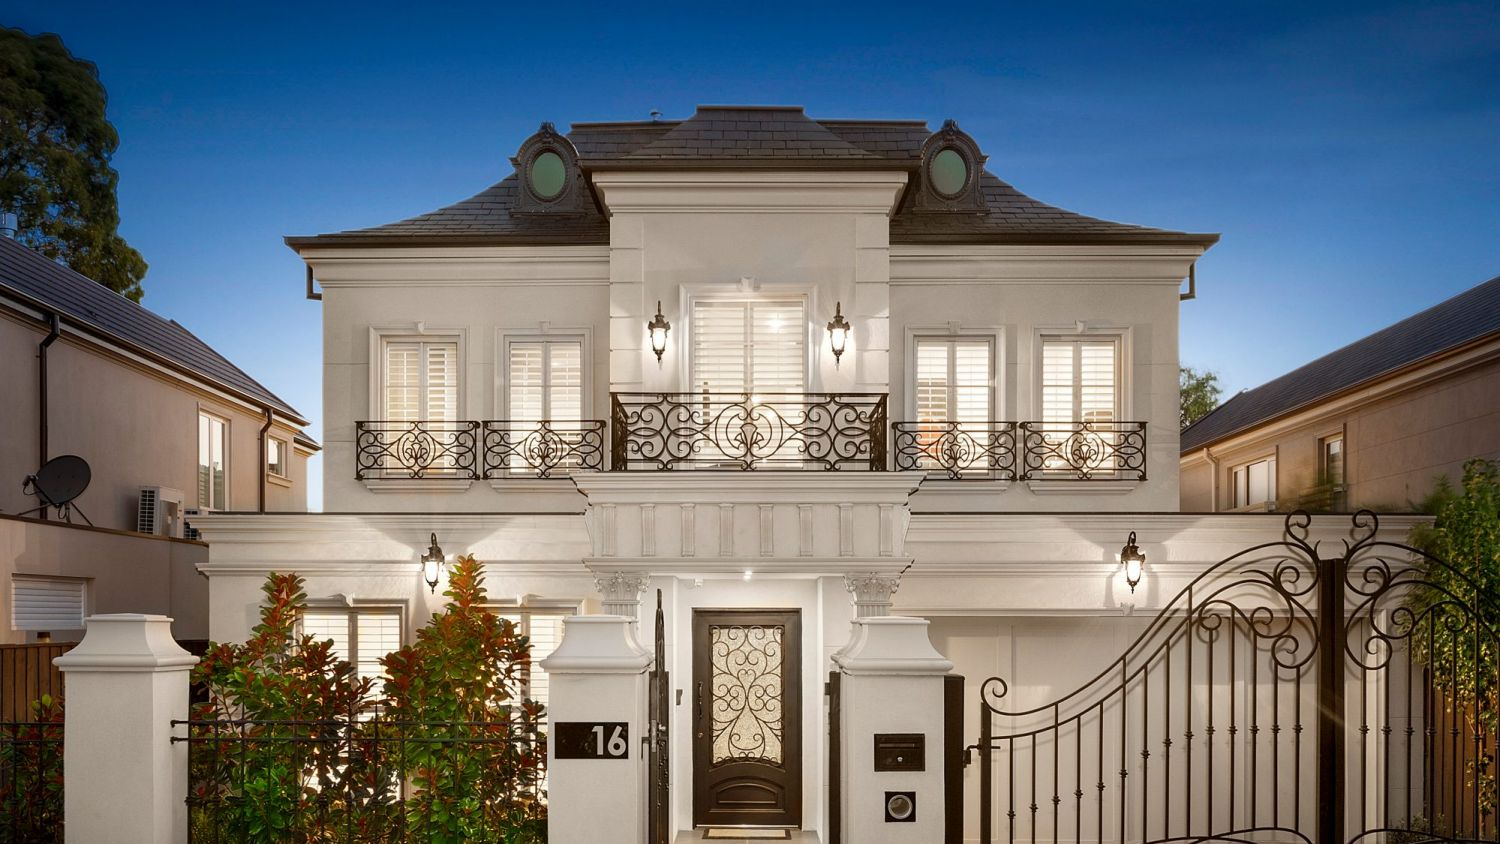 Regaling Kew Is Quite French Provincial House Colours French Provincial House This Mini Manor More Prestigious Private Mount Kewpresents A Meticulous French Facade To Edgar House Sale Melbourne houzz 01 French Provincial House